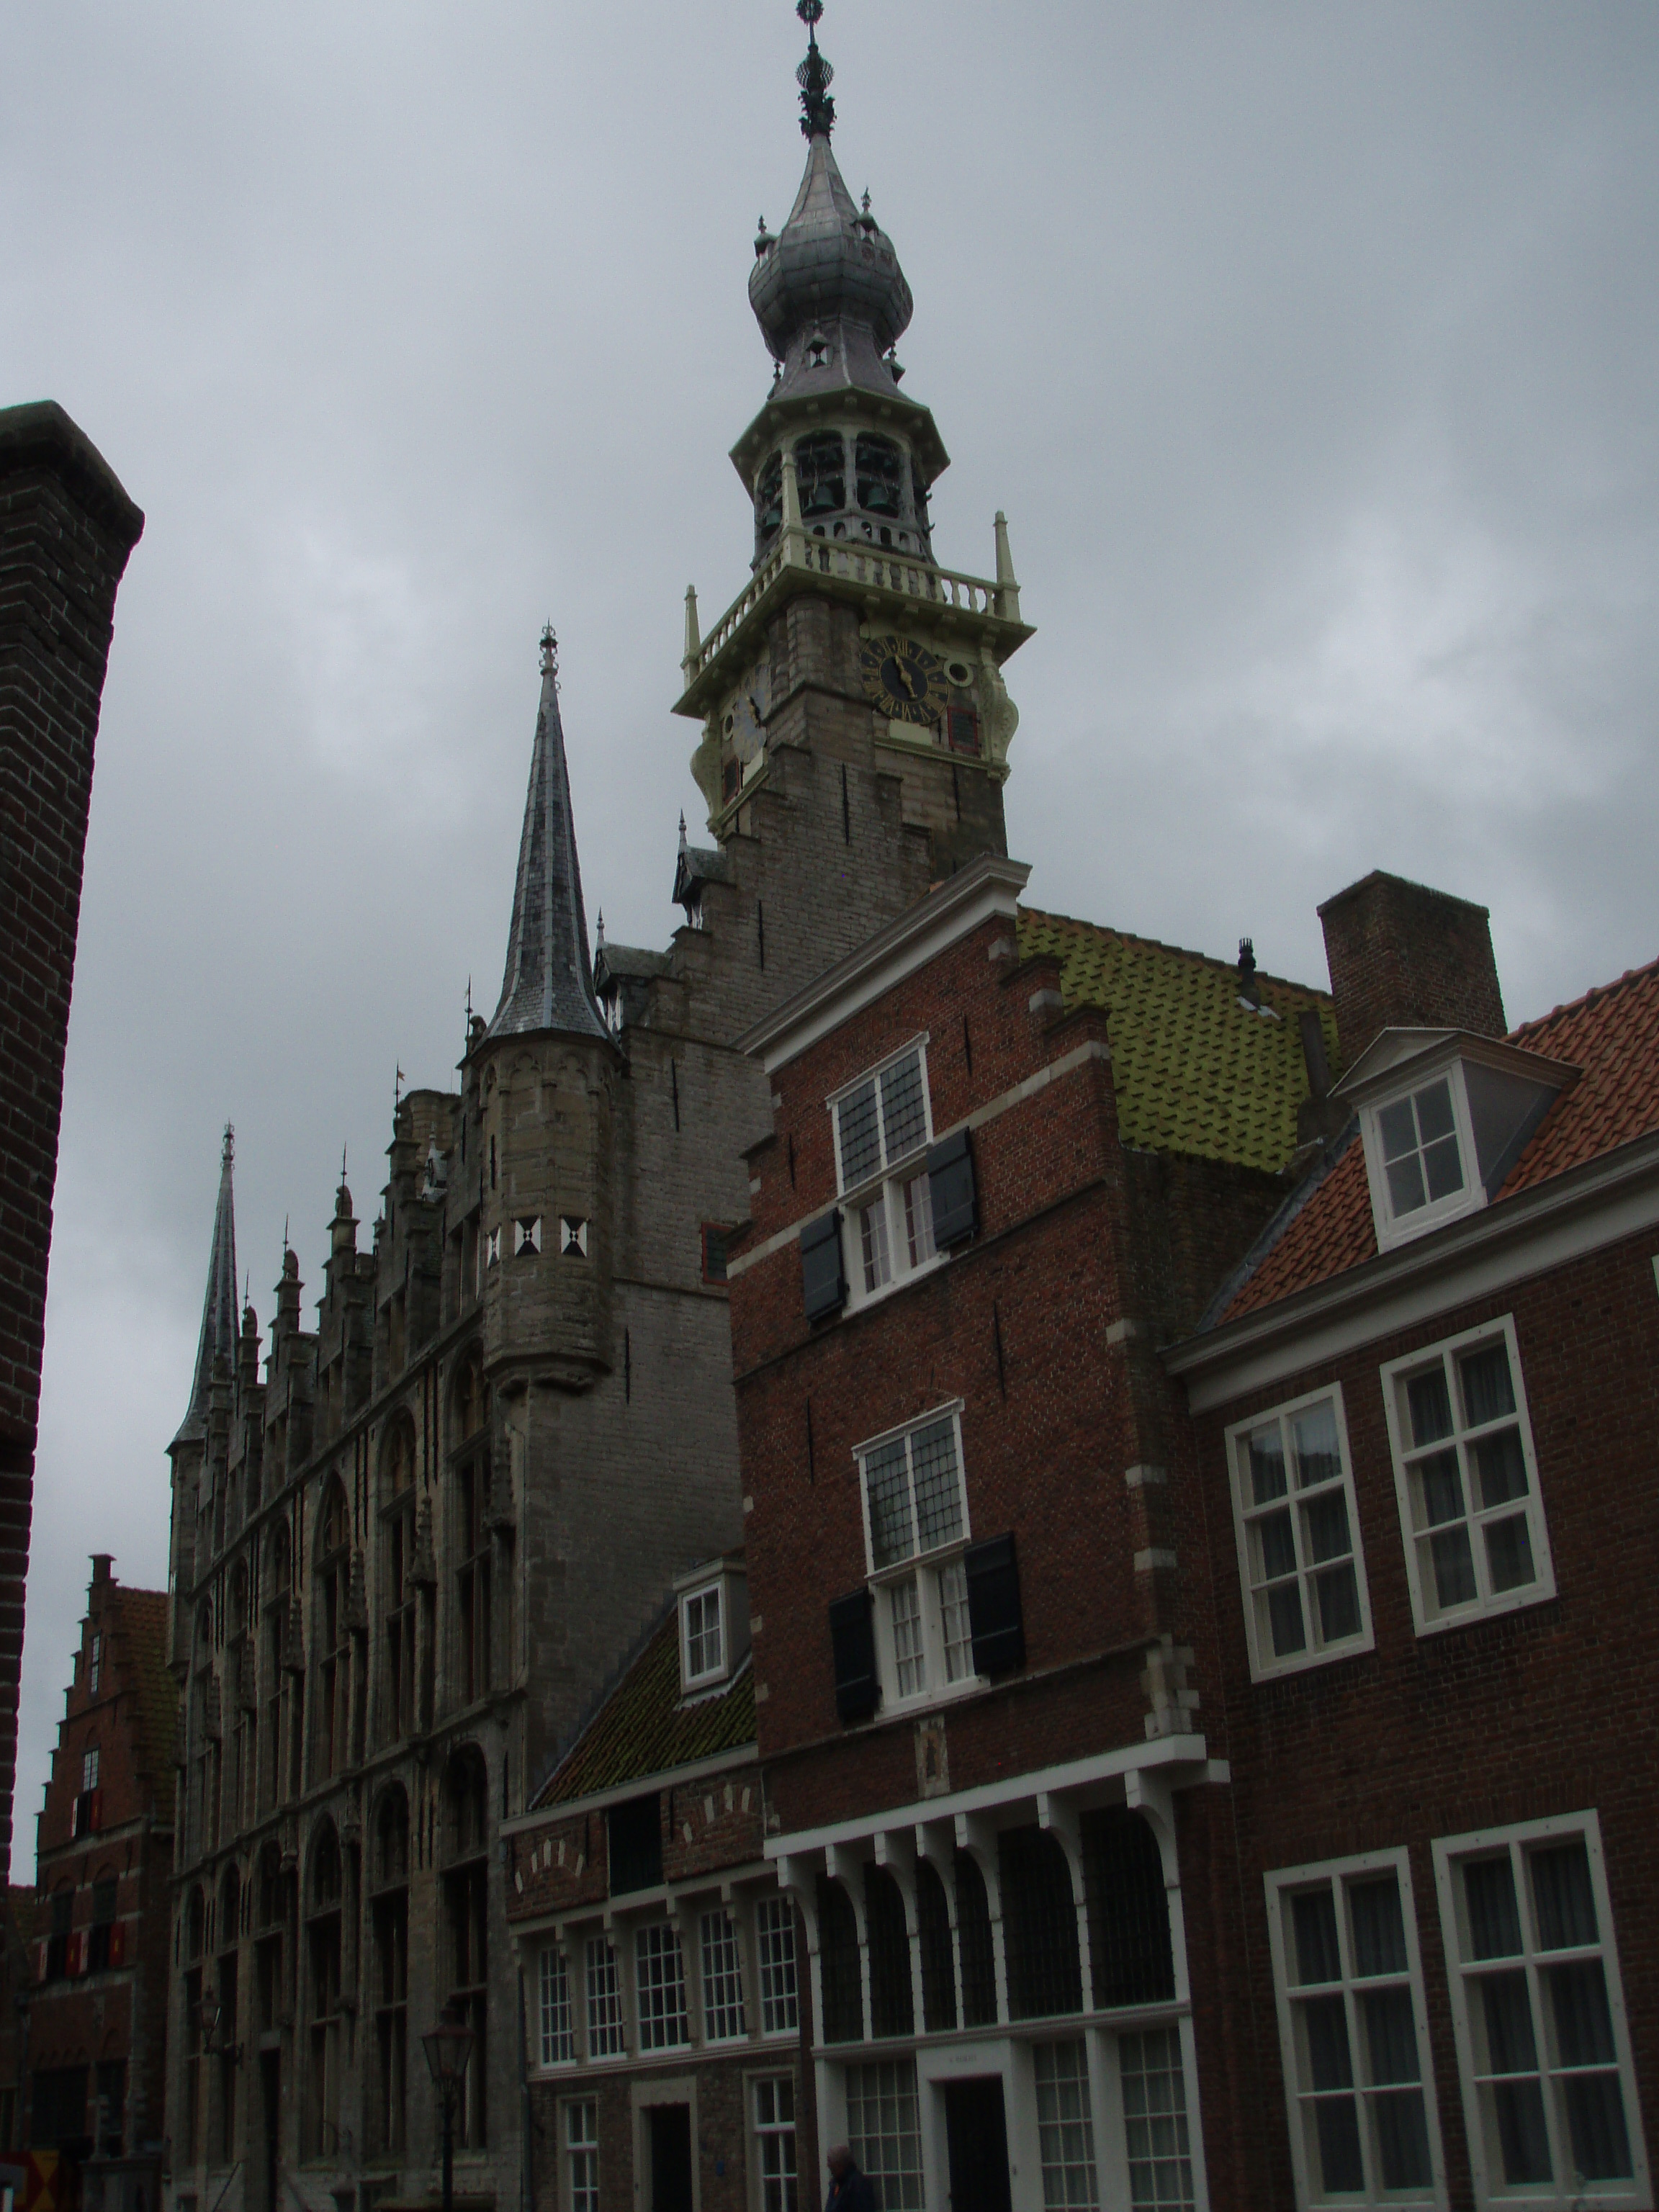 Veere Town Hall with clock Tower